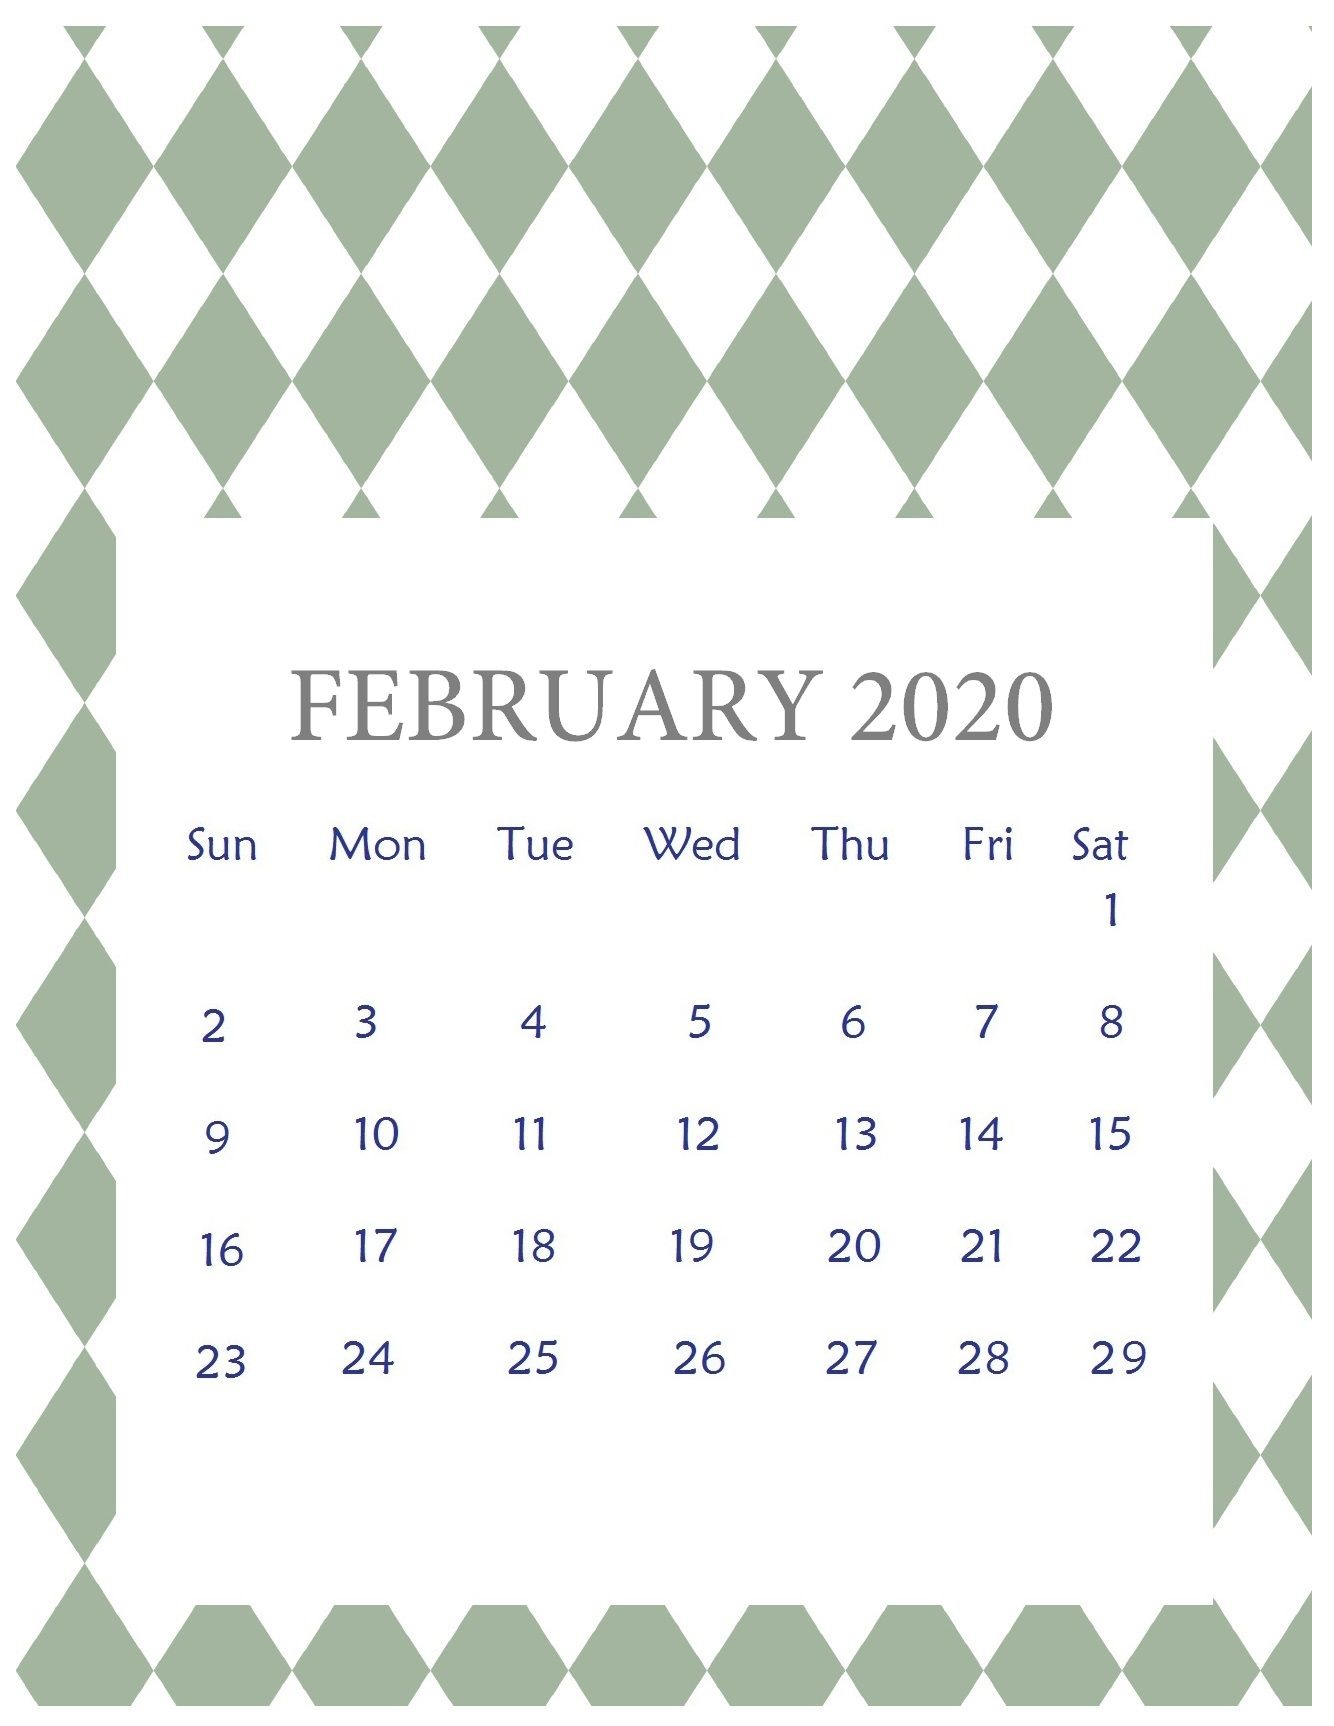 February 2020 Calendar Wallpapers   Top February 2020 1334x1726